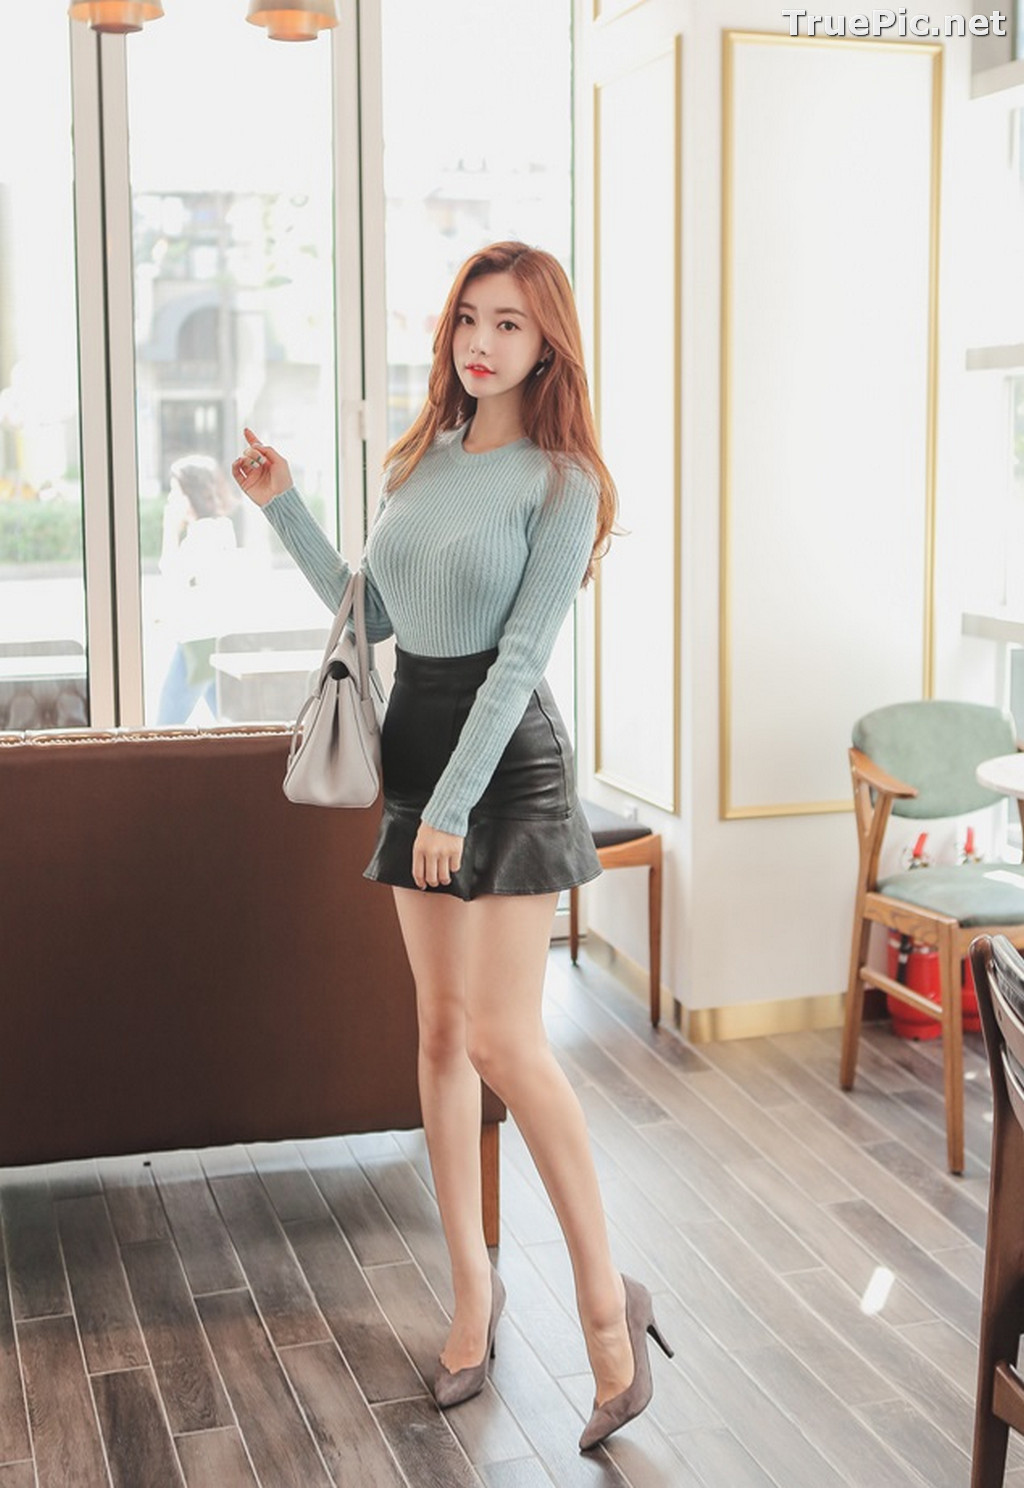 Image Korean Fashion Model – Hyemi – Office Dress Collection #3 - TruePic.net - Picture-5